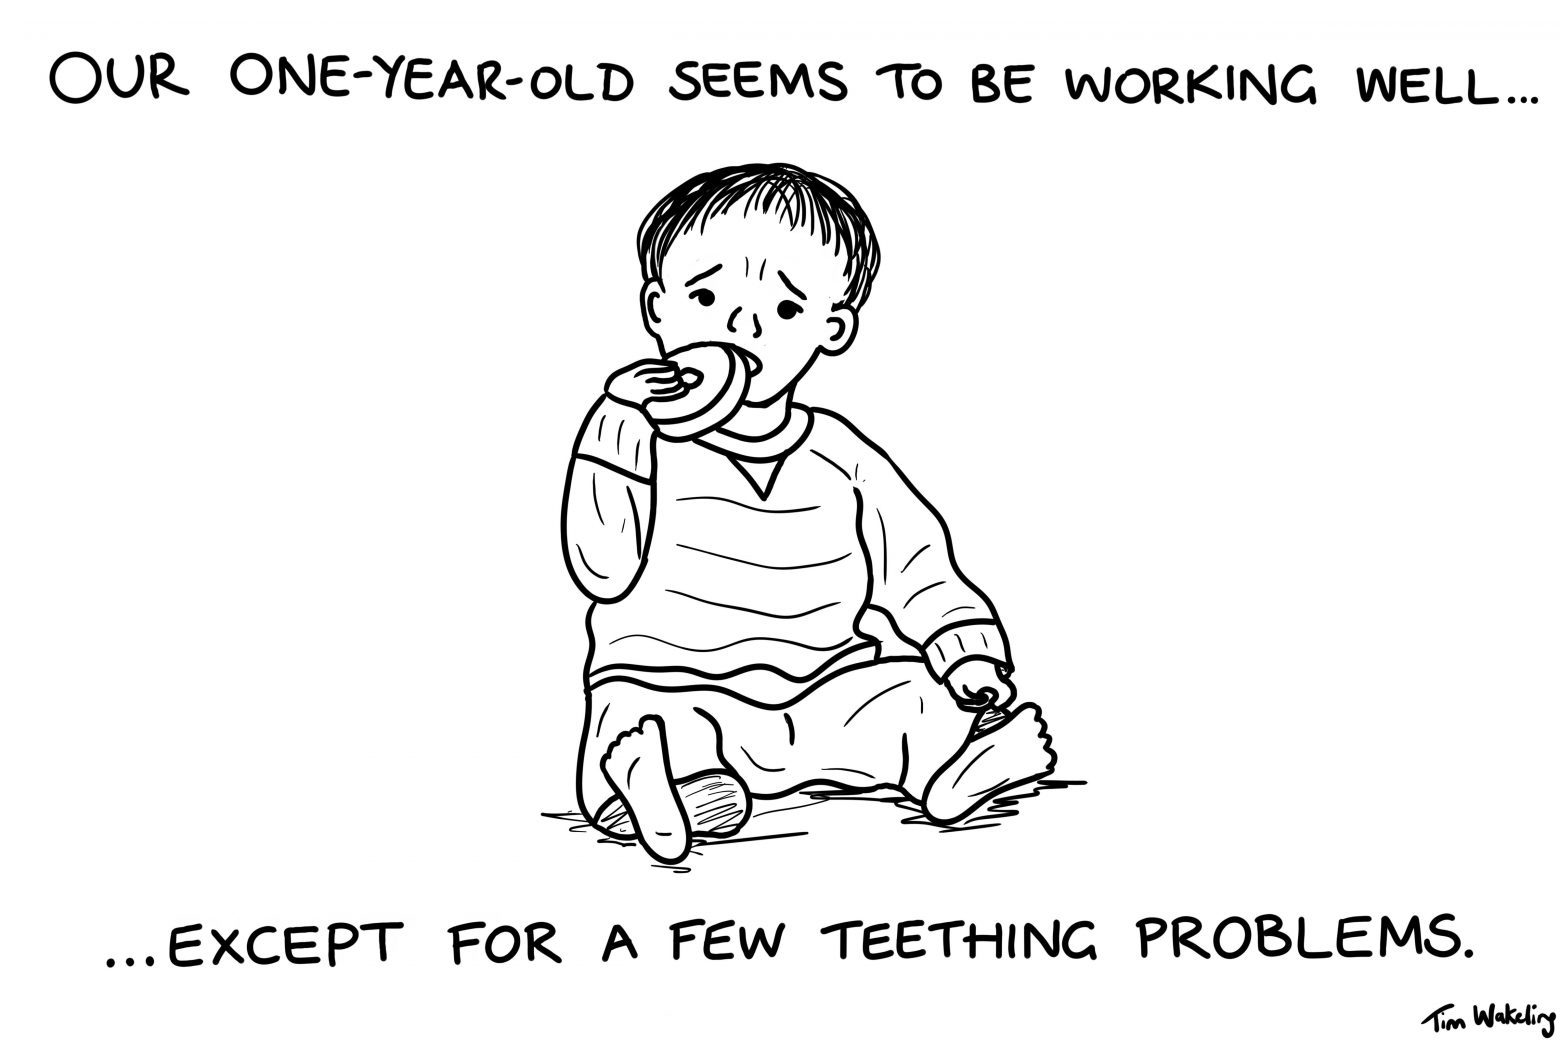 Teething problems